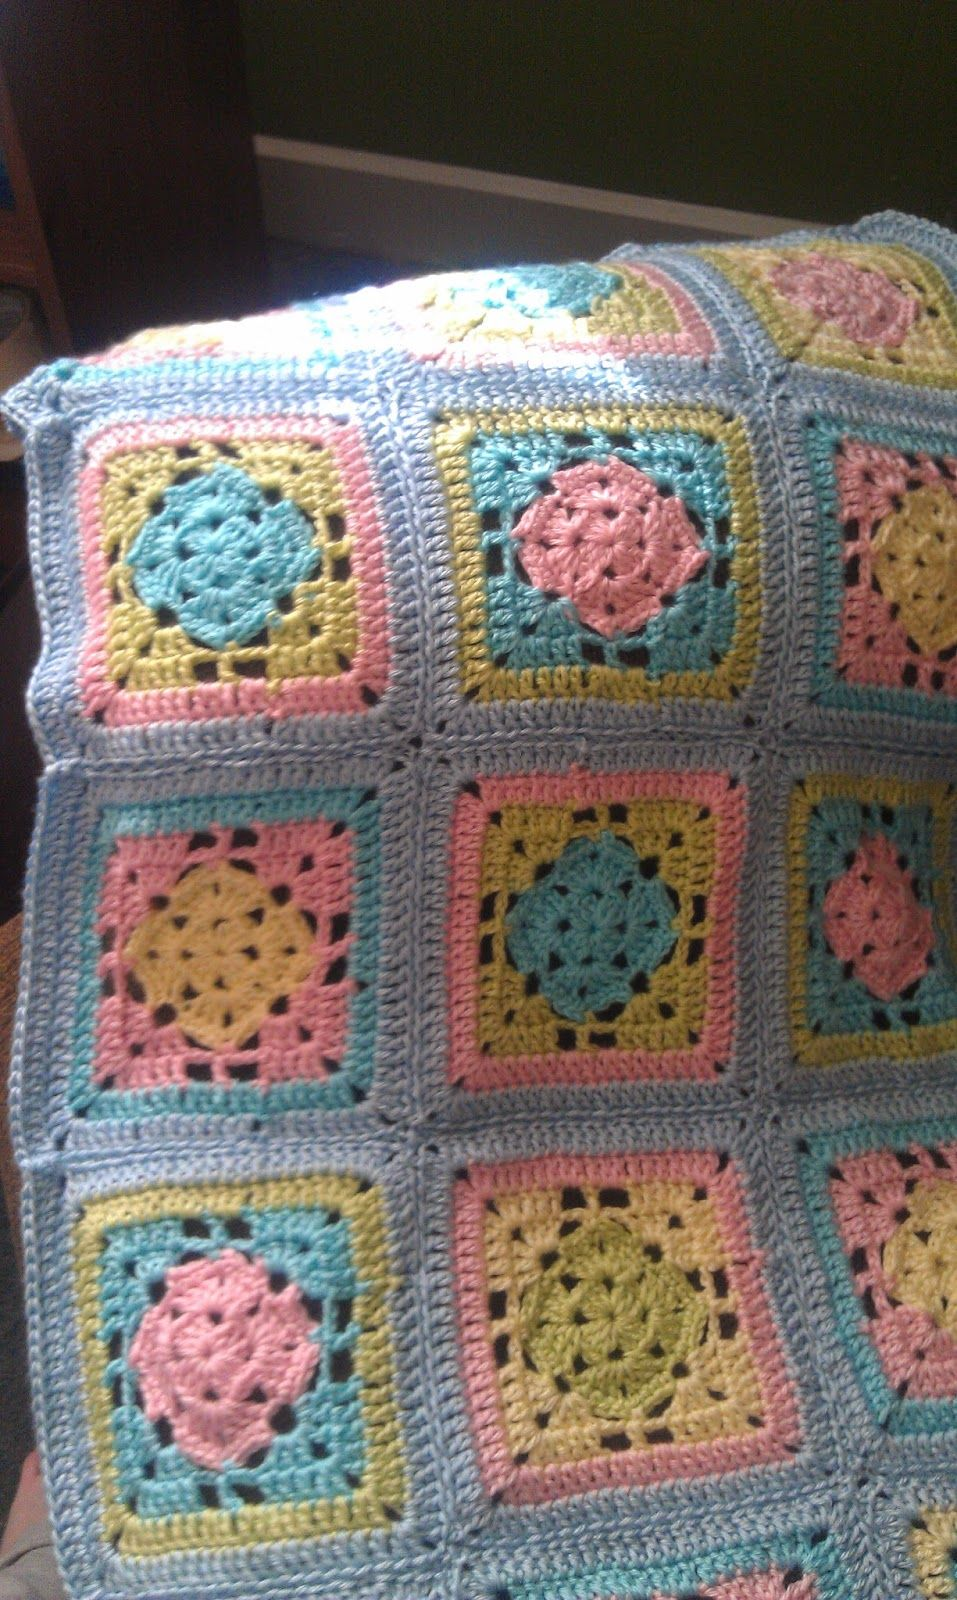 Granny manta crochet cuadrado granny y ganchillo pinterest spring fling granny square blanket free crochet pattern by shelly of missed stitches squares measure in worsted weight yarn with hook bankloansurffo Image collections